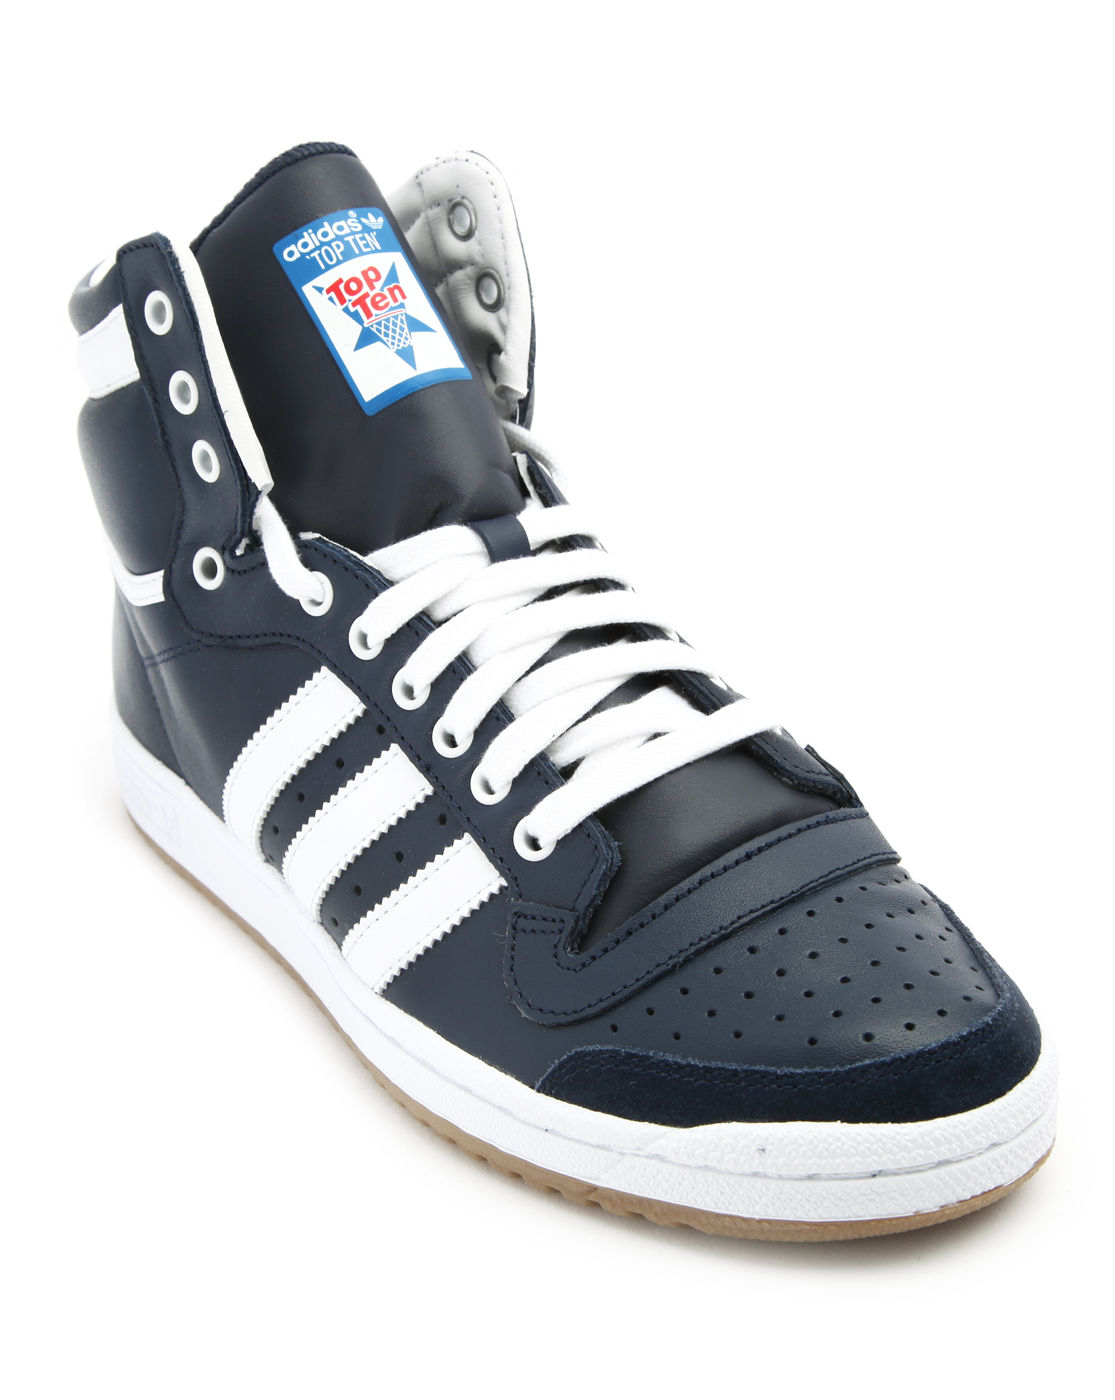 adidas top ten hi blue leather sneakers in blue for men lyst. Black Bedroom Furniture Sets. Home Design Ideas